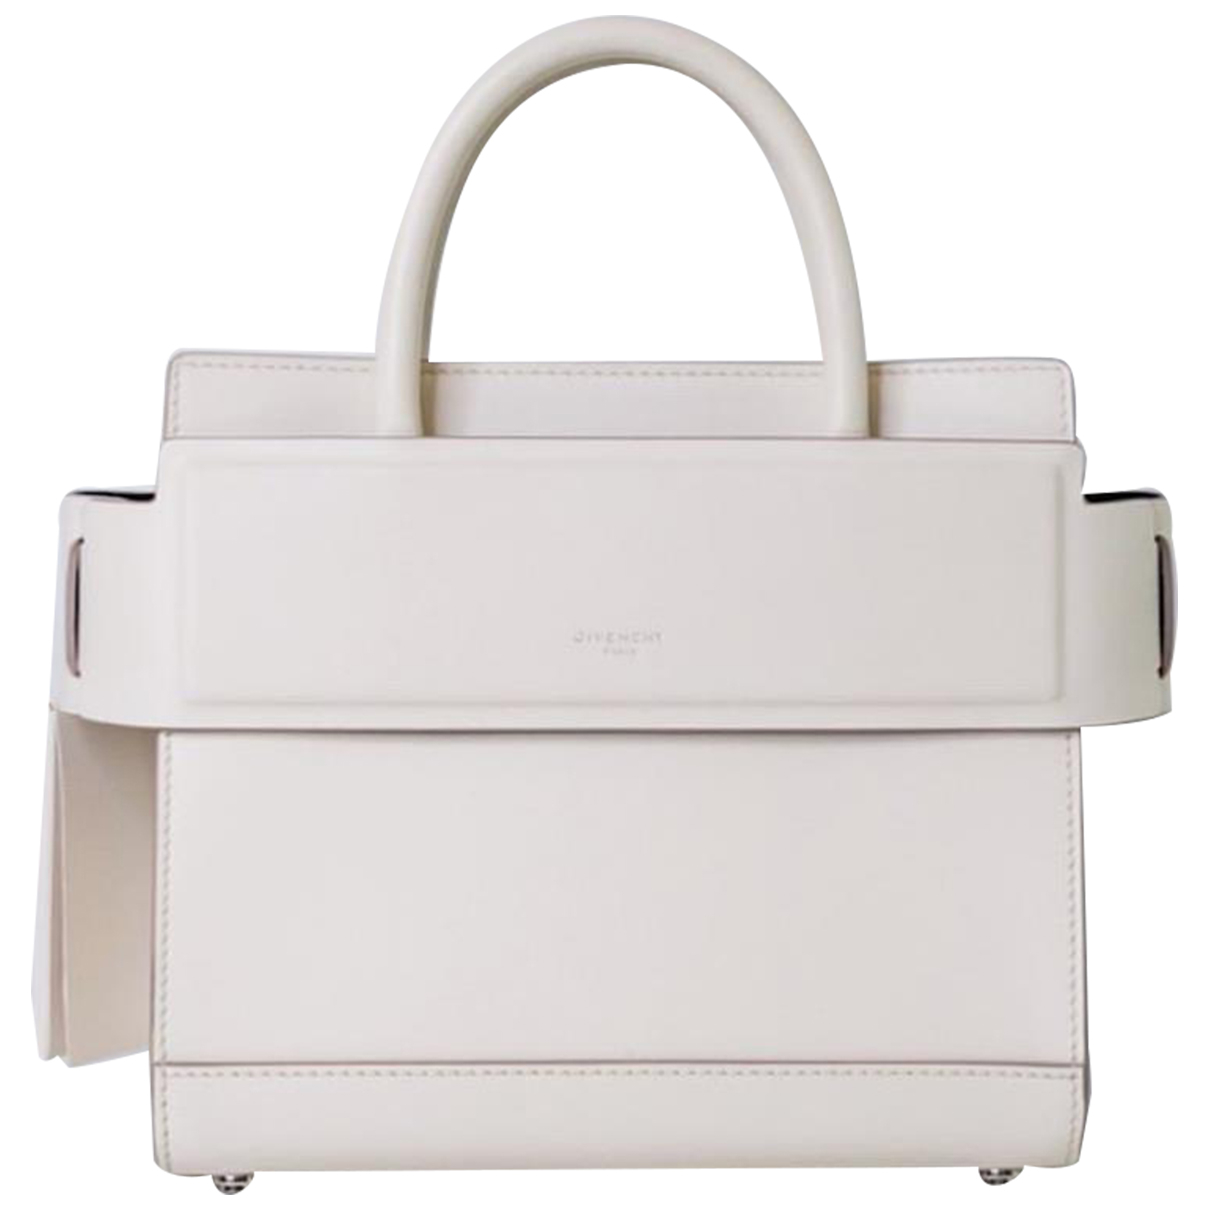 Givenchy N White Leather handbag for Women N